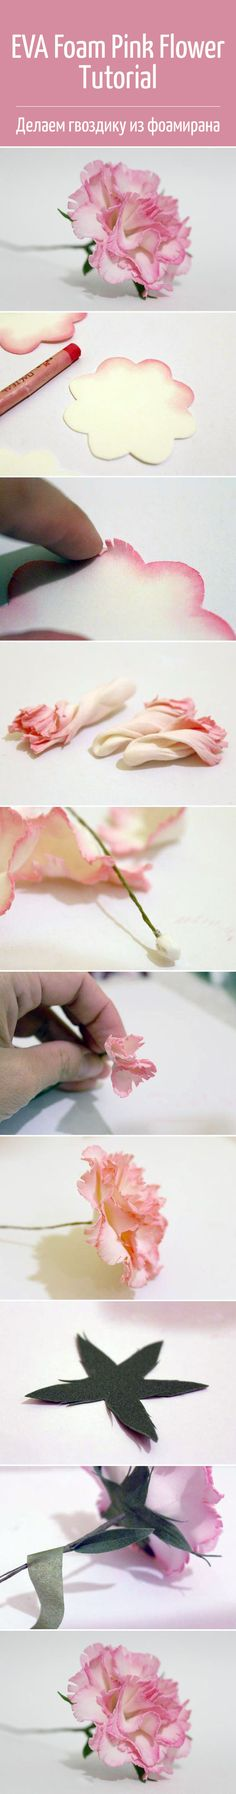 49 Super Ideas For Flowers Diy Foam Crepe Paper Flowers, Felt Flowers, Diy Flowers, Fabric Flowers, Clay Crafts, Diy And Crafts, Paper Crafts, Gum Paste Flowers, Polymer Clay Flowers